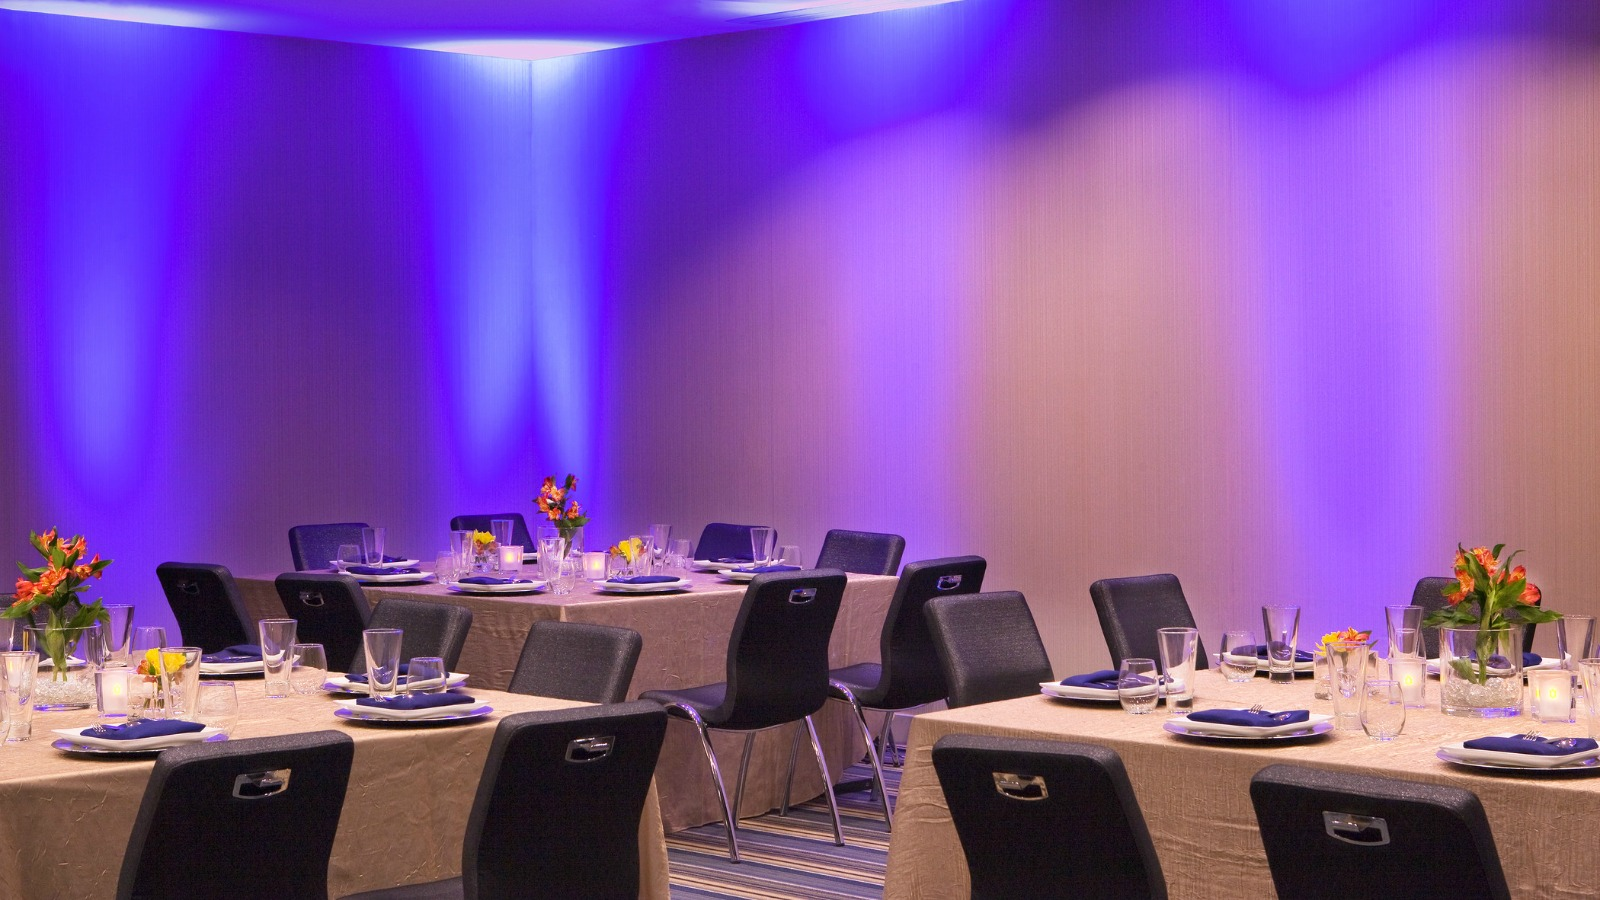 Event Venues Tucson - Meeting Space